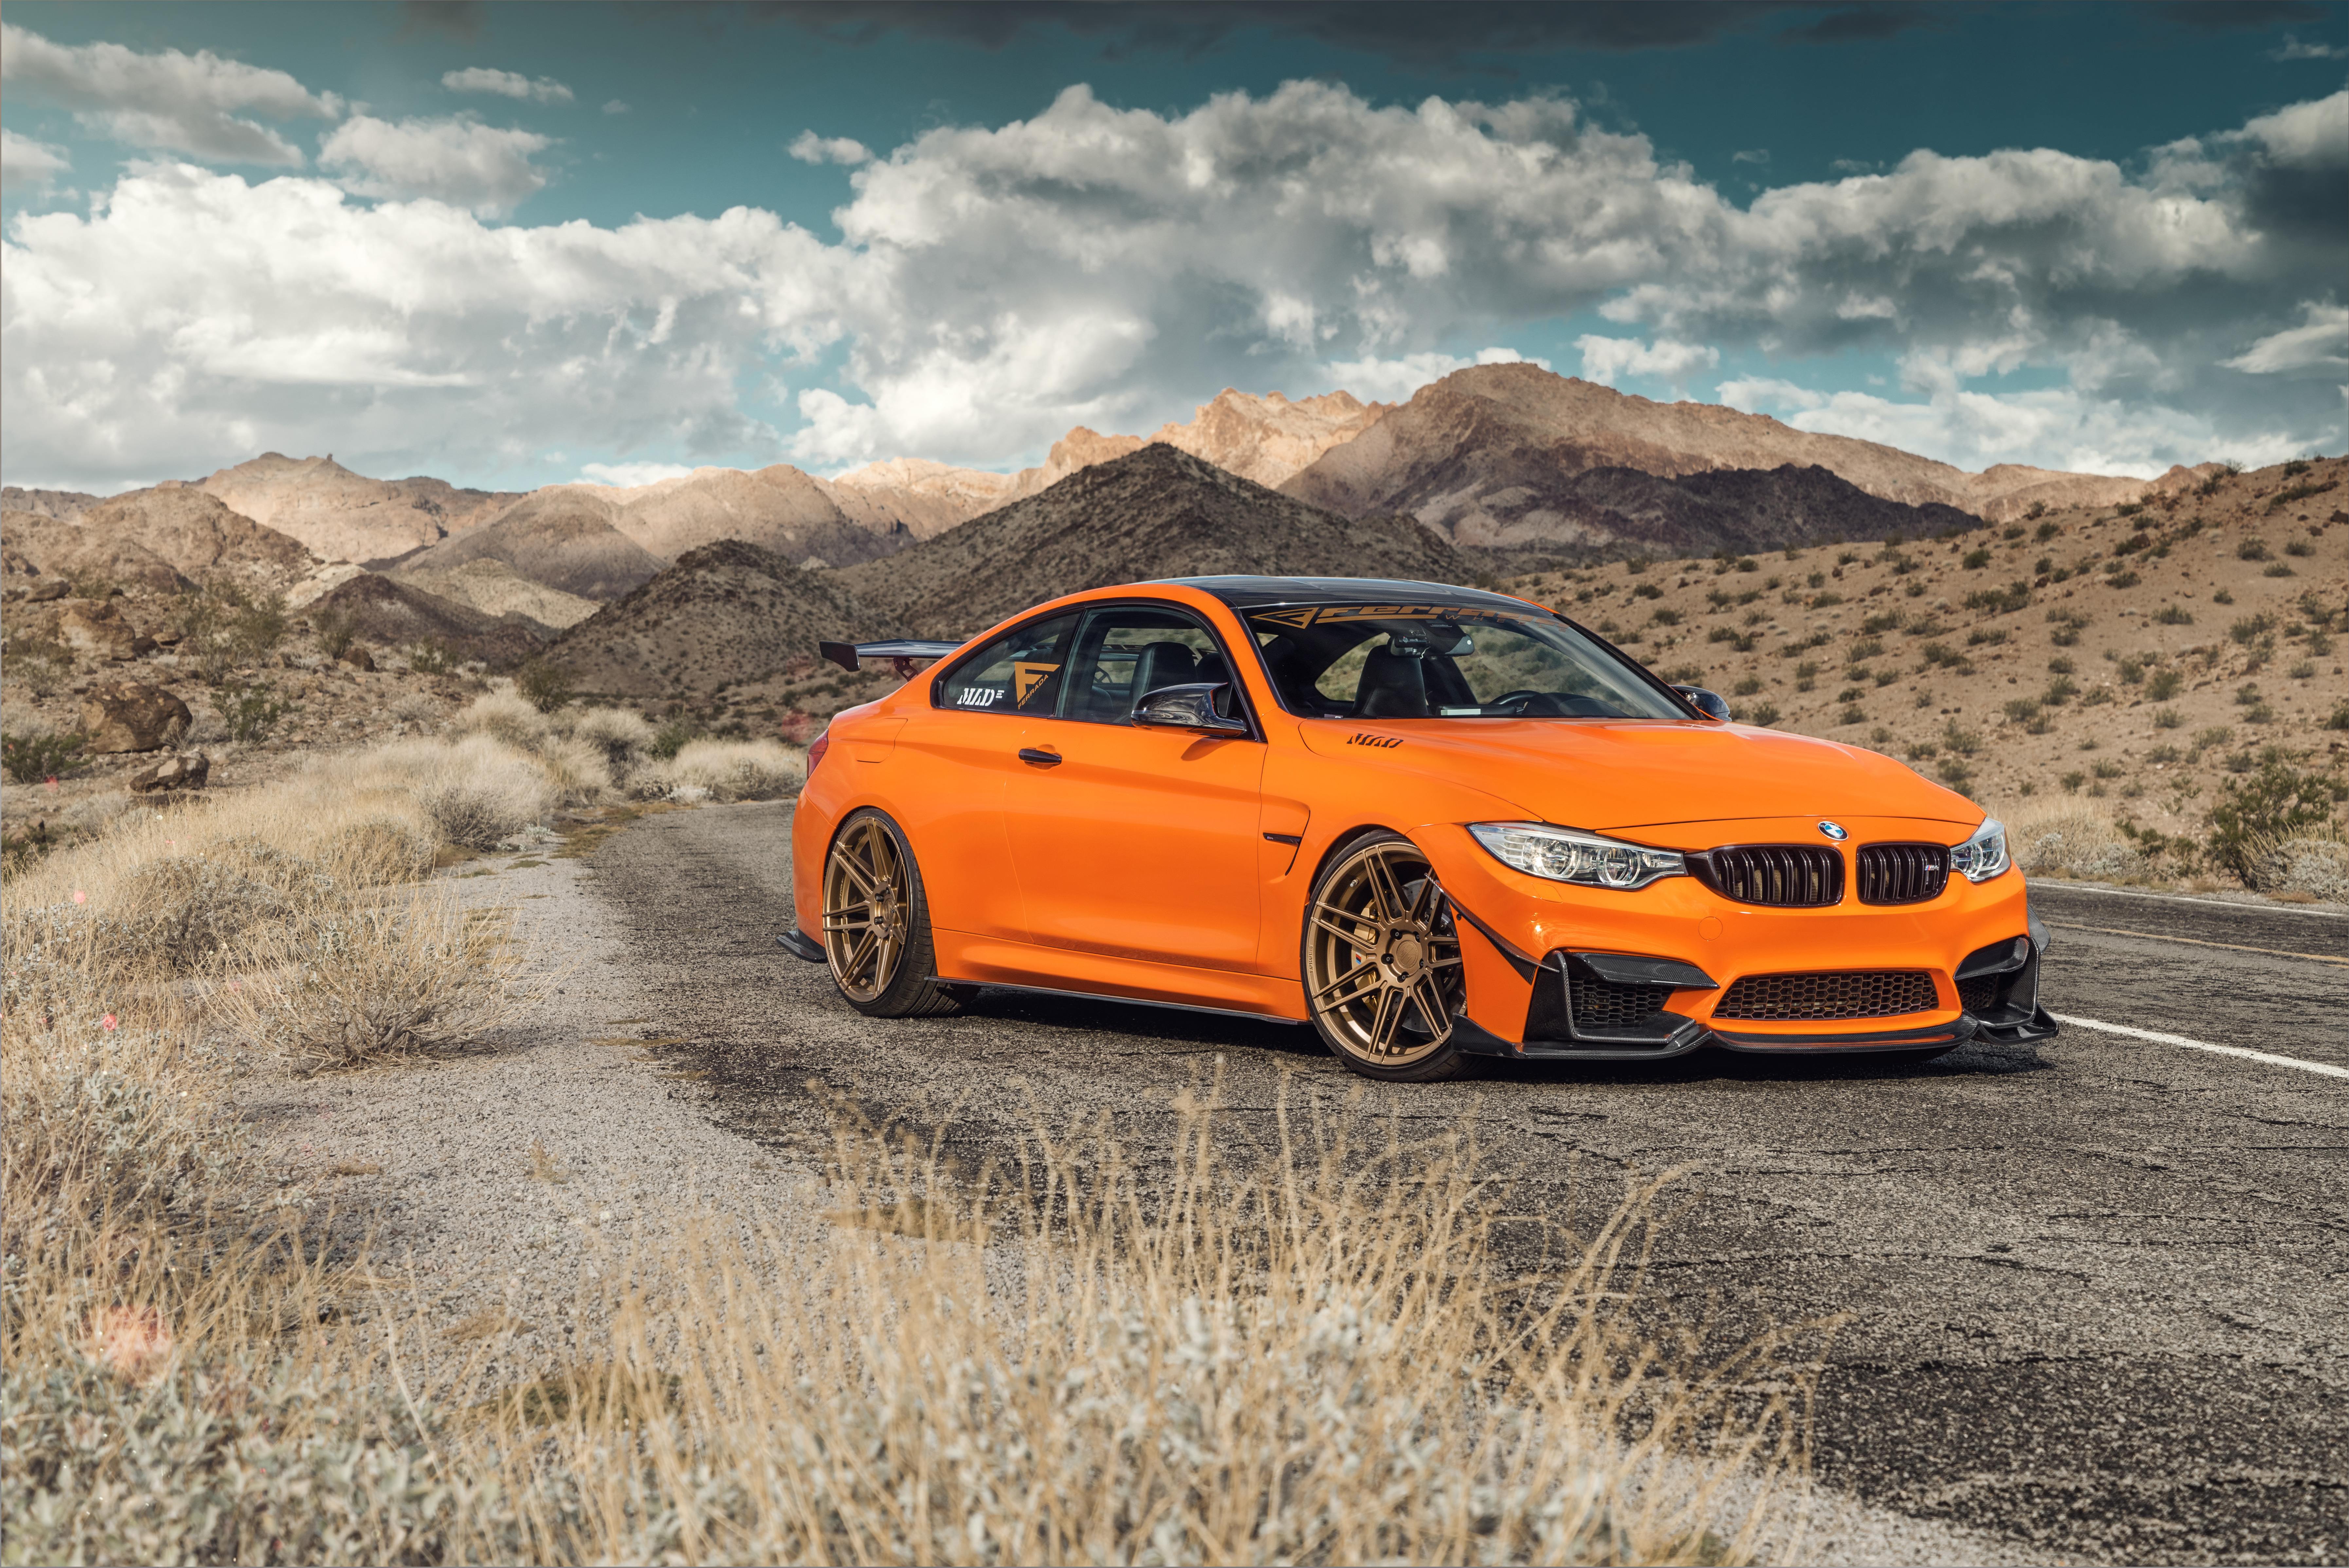 Bmw M4 8k 2019 Hd Cars 4k Wallpapers Images Backgrounds Photos And Pictures